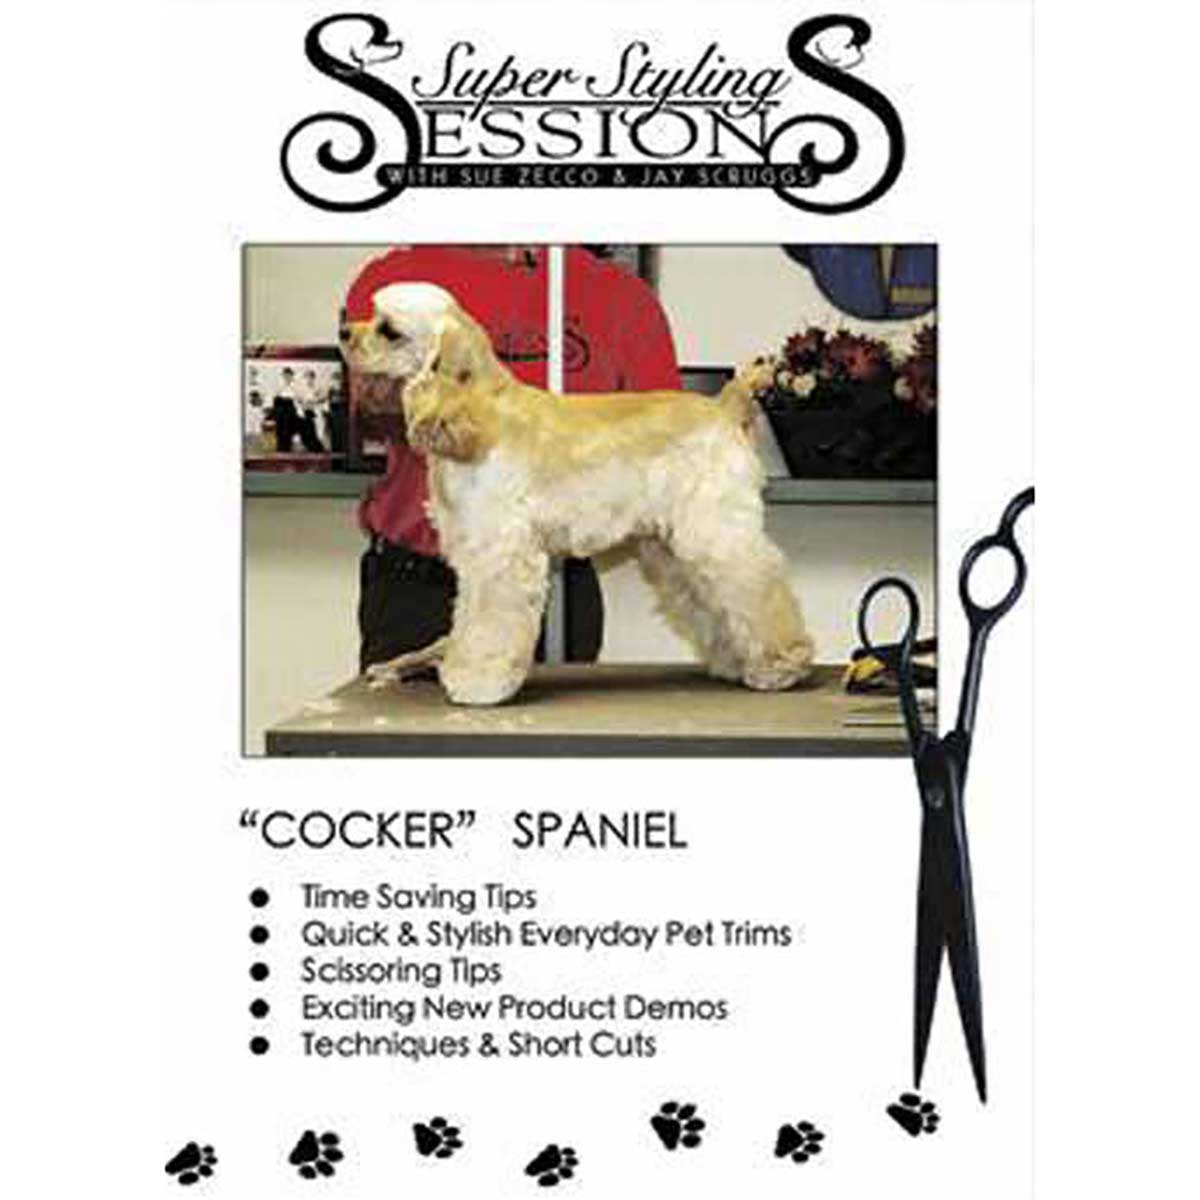 Super Styling Sessions - The Cocker Spaniel Grooming DVD